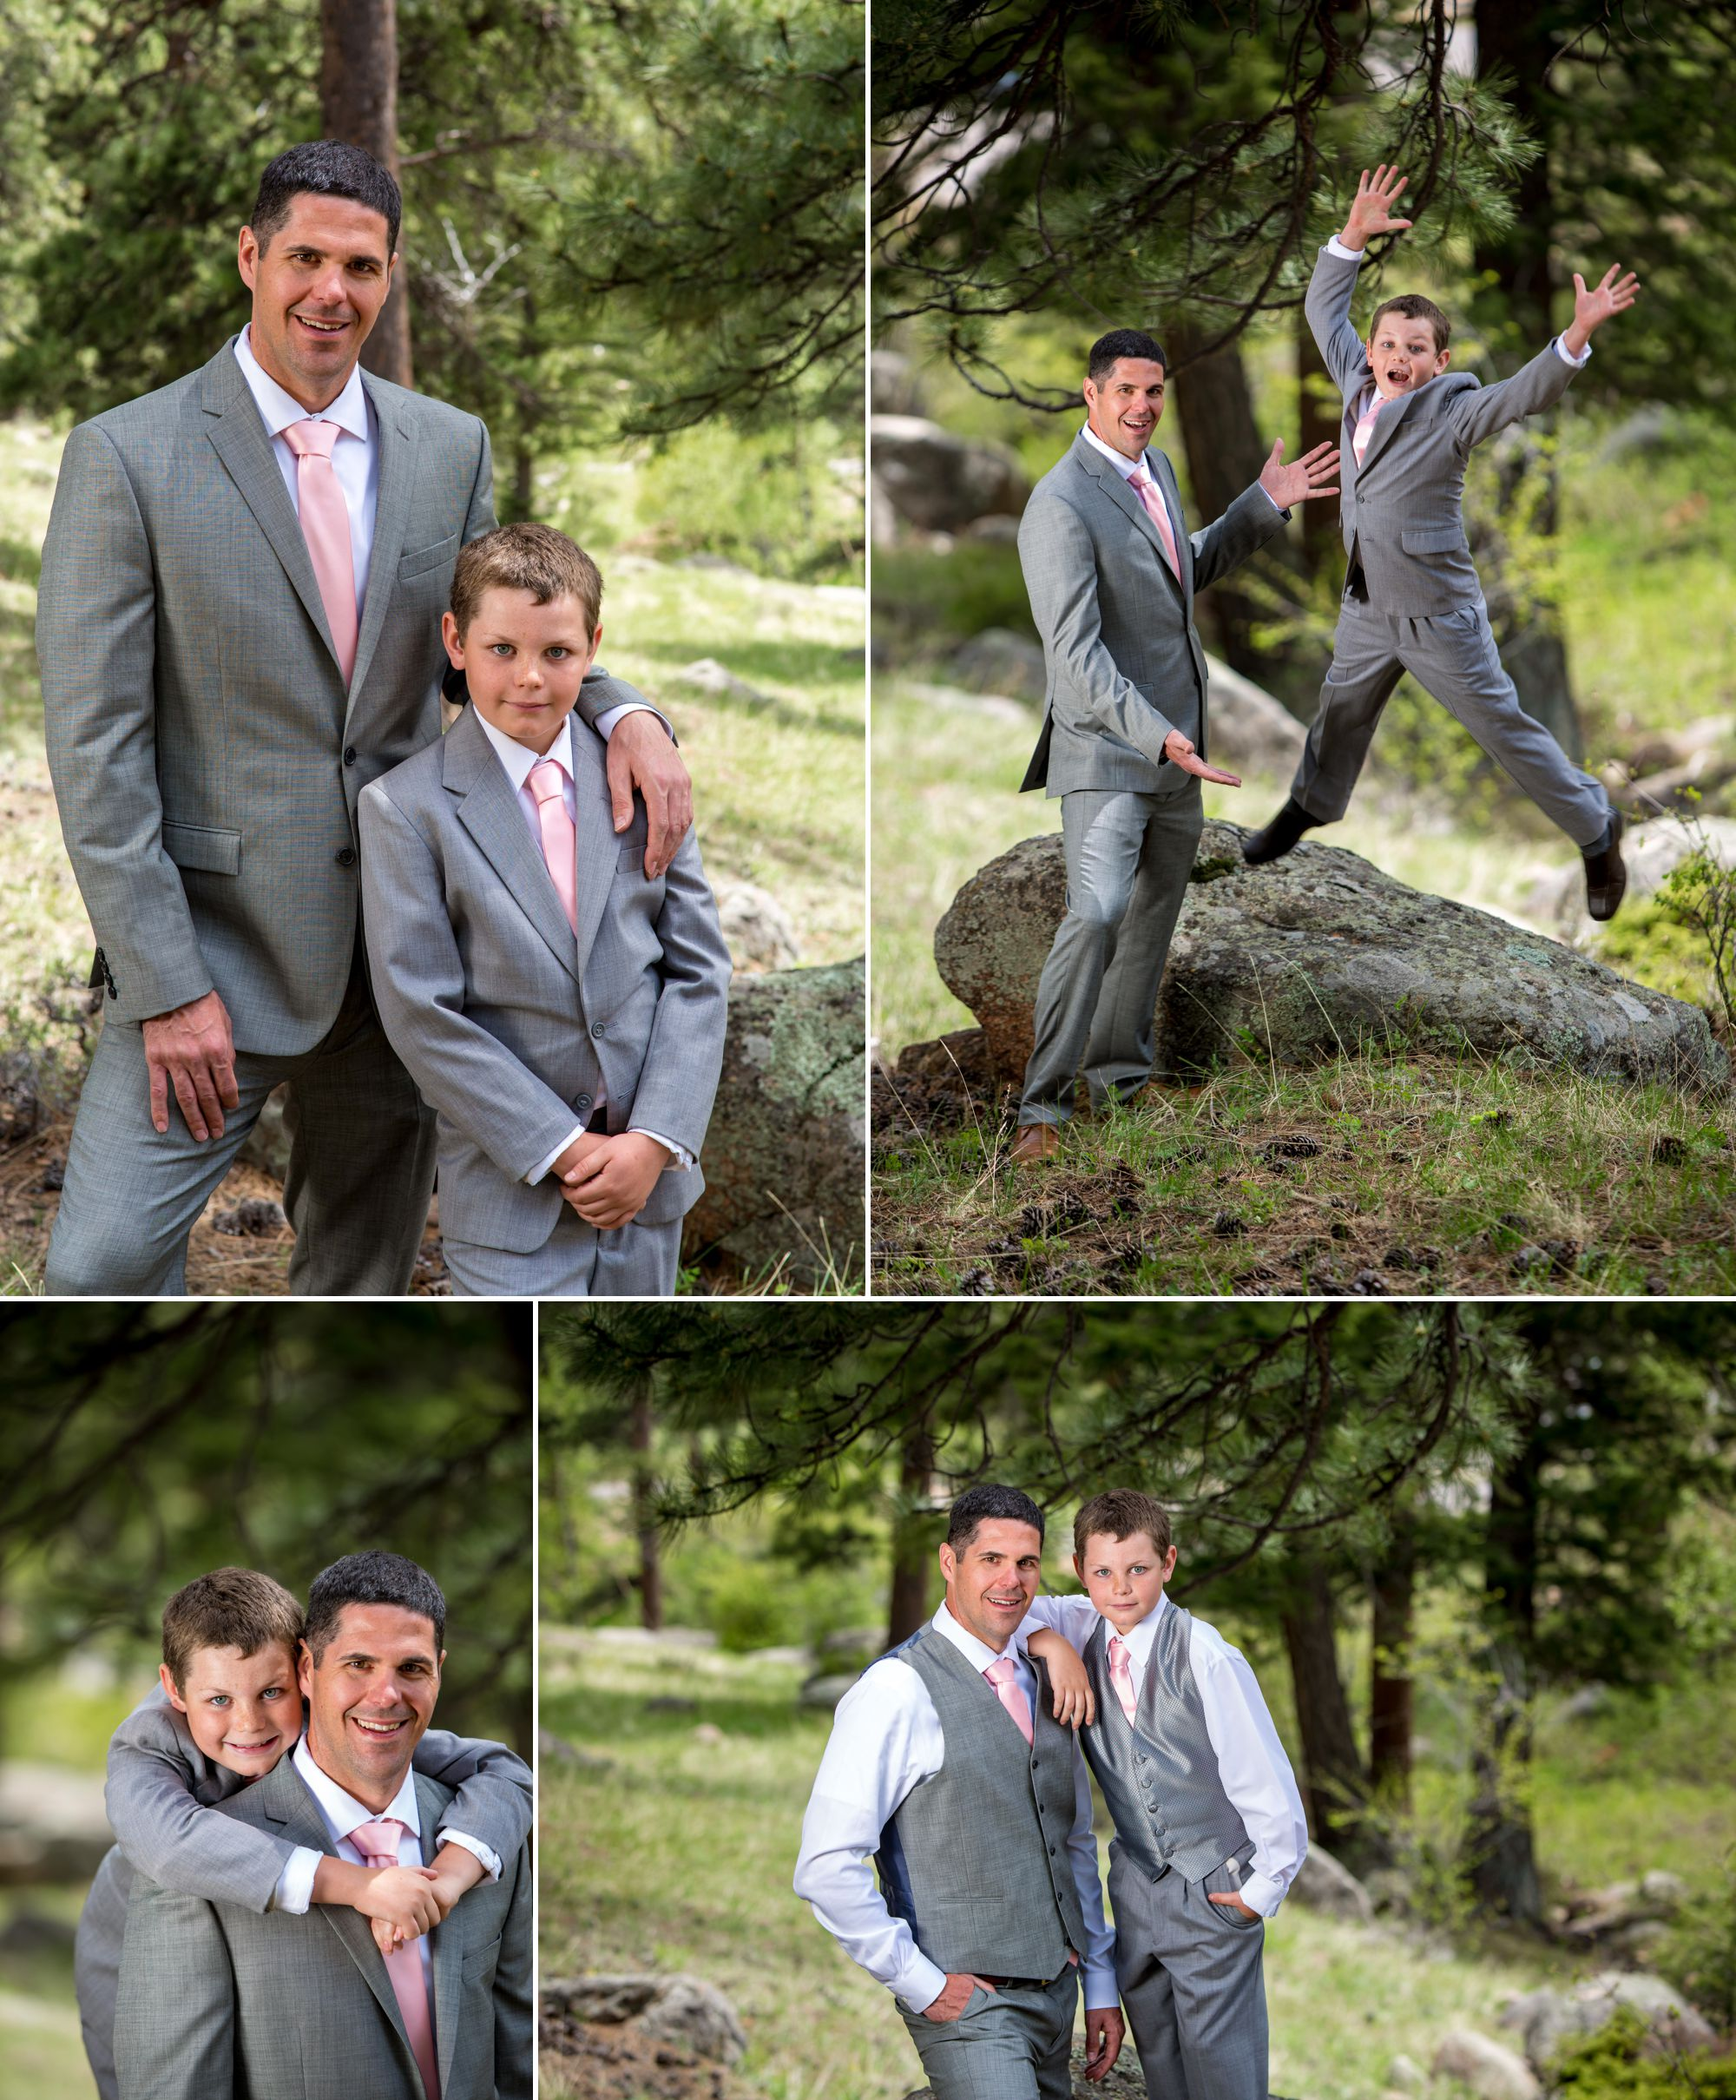 Groom and Best Man photos (father-son wedding day images)